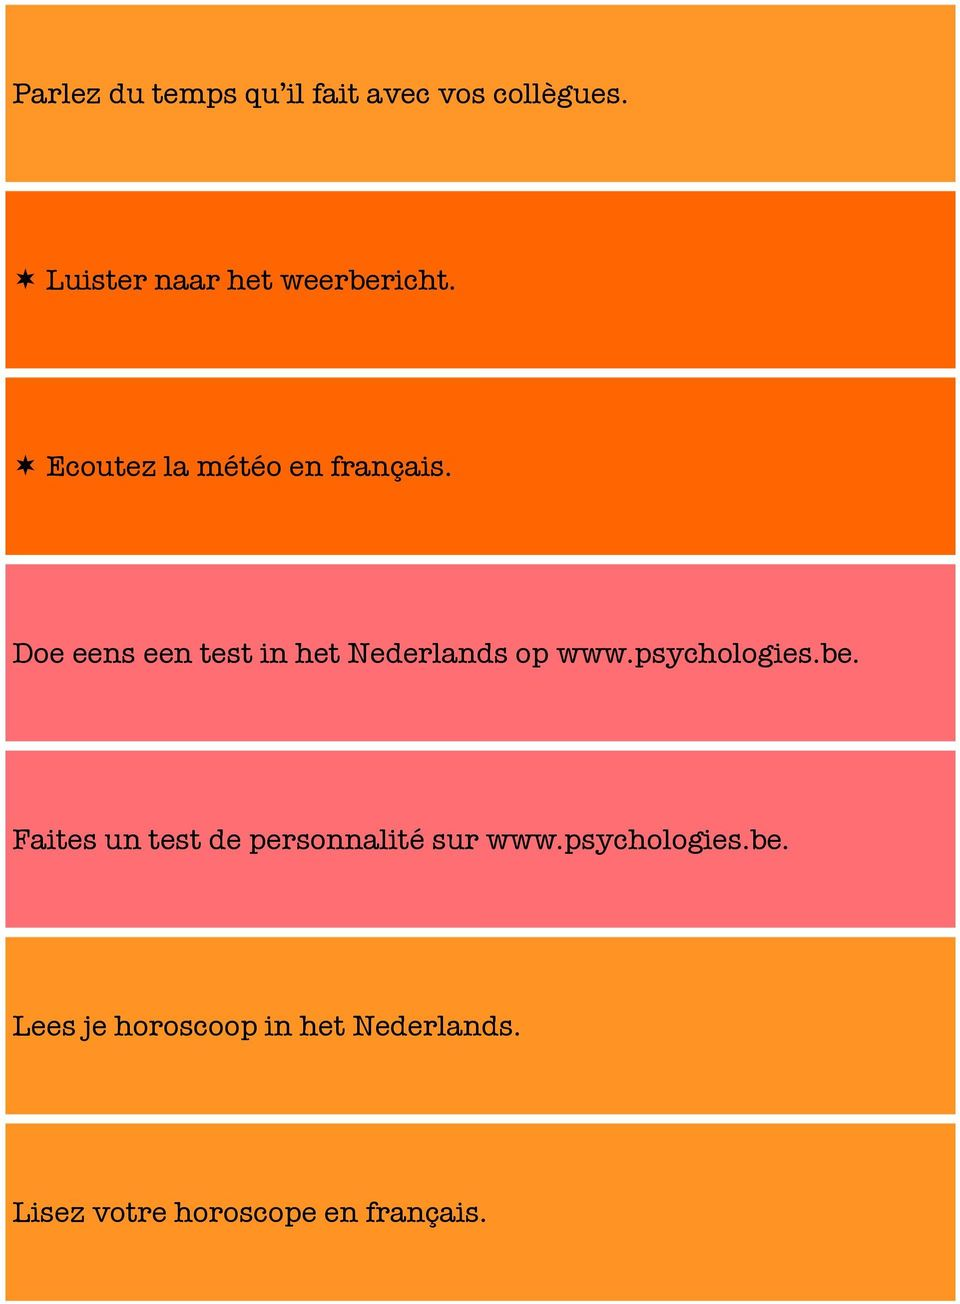 Doe eens een test in het Nederlands op www.psychologies.be.